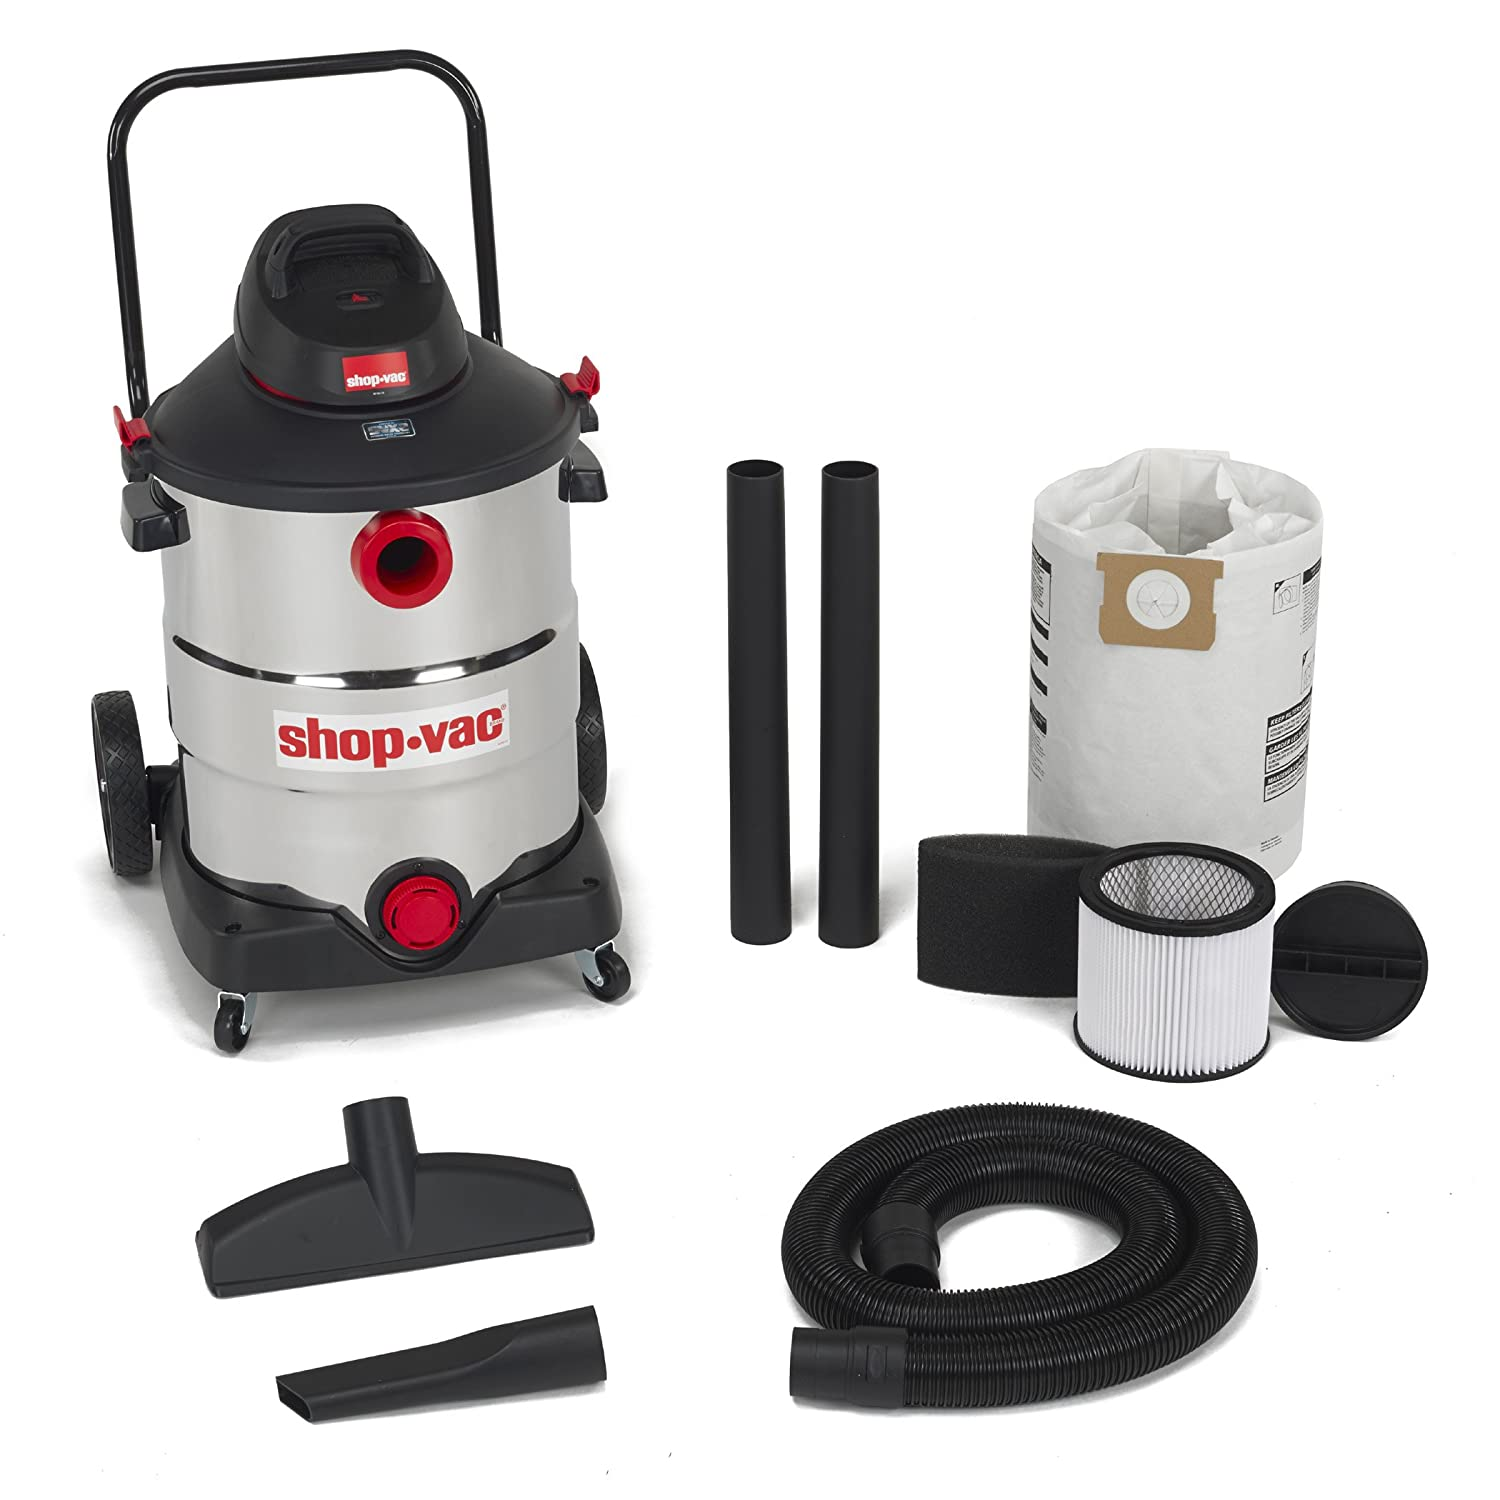 Shop-Vac 5989700 16 gallon 6.5 Peak HP Stainless with Handle Wet Dry Vacuum Black with Accessories uses Type U Cartridge Filter Type R Foam Sleeve & Type G Filter Bag